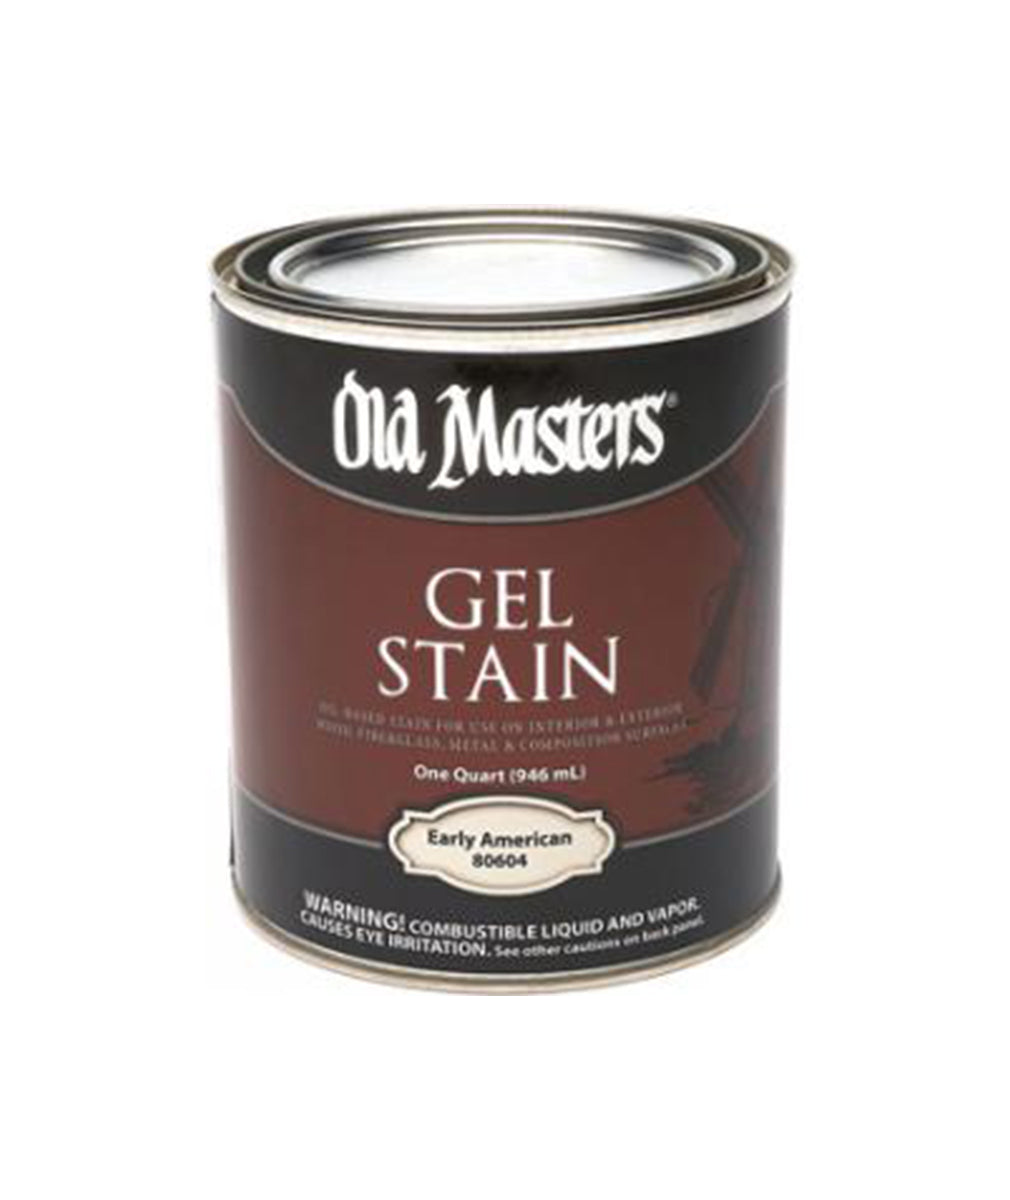 Can of Old Masters Gel Stain, available at Clement's Paint in Austin, TX.